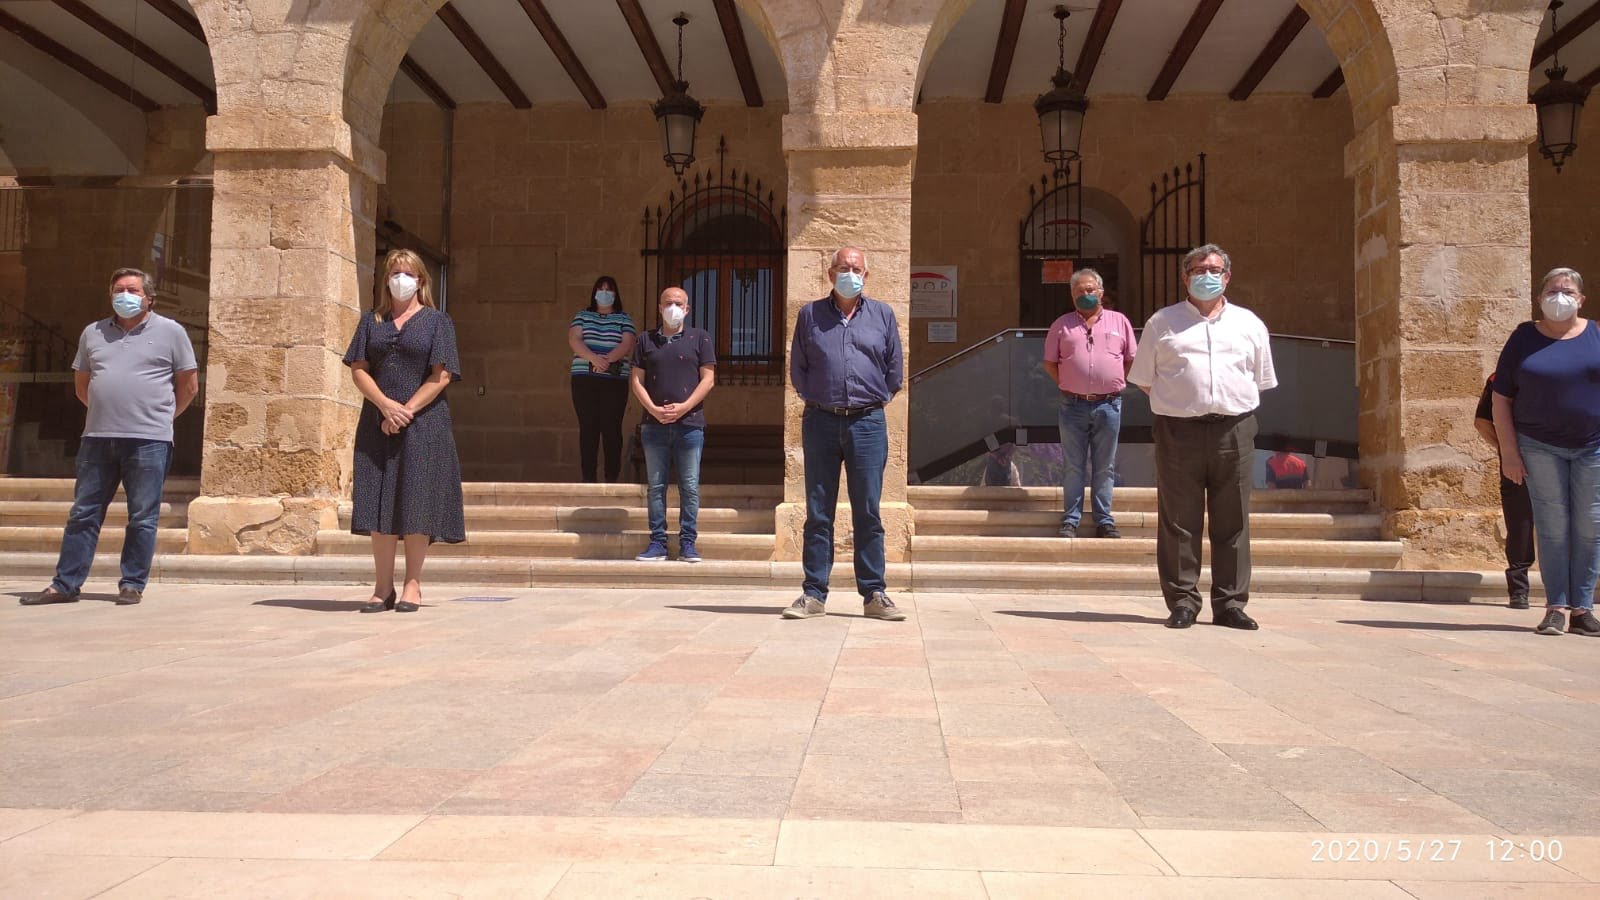 Minute of silence in front of the town hall